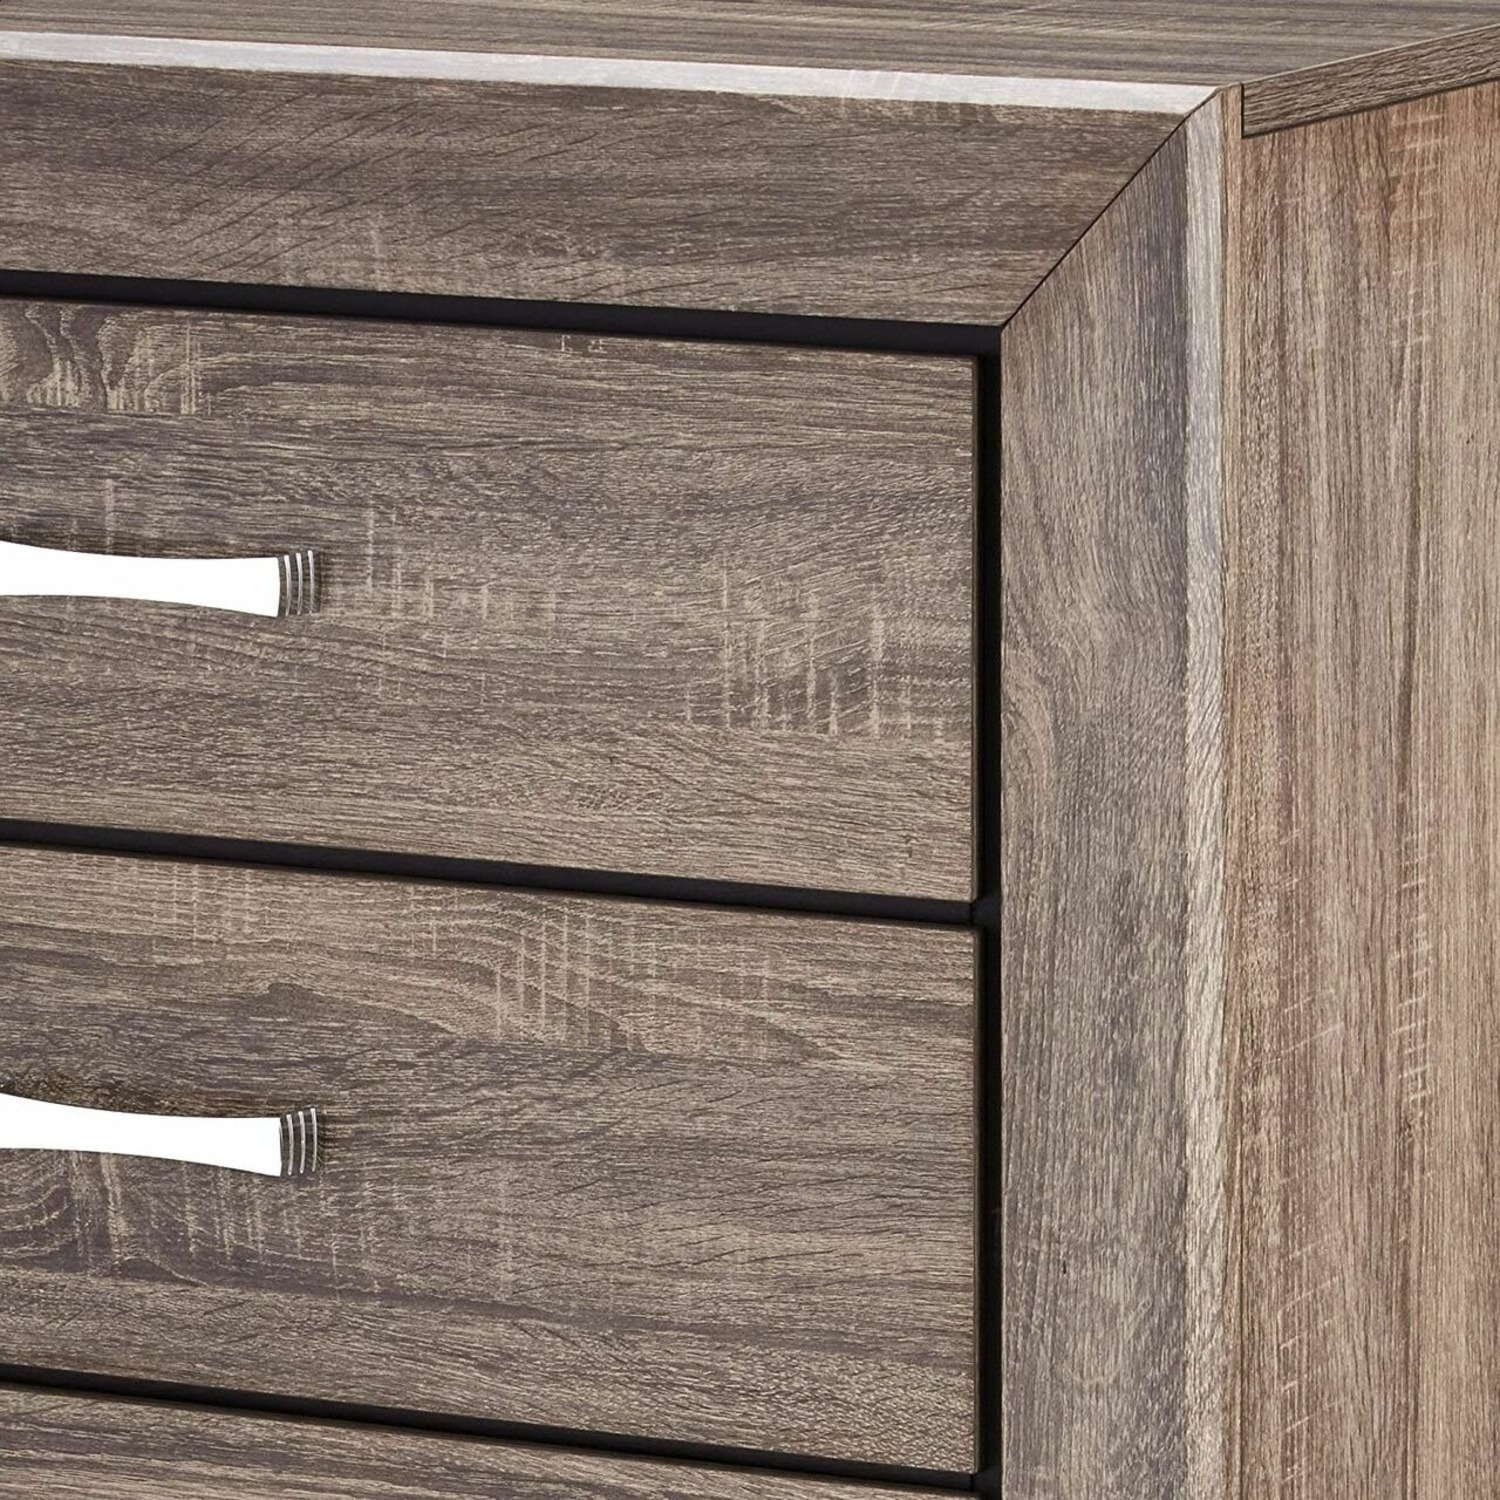 Chest In Washed Taupe Finish W/ Chrome Handles - image-4